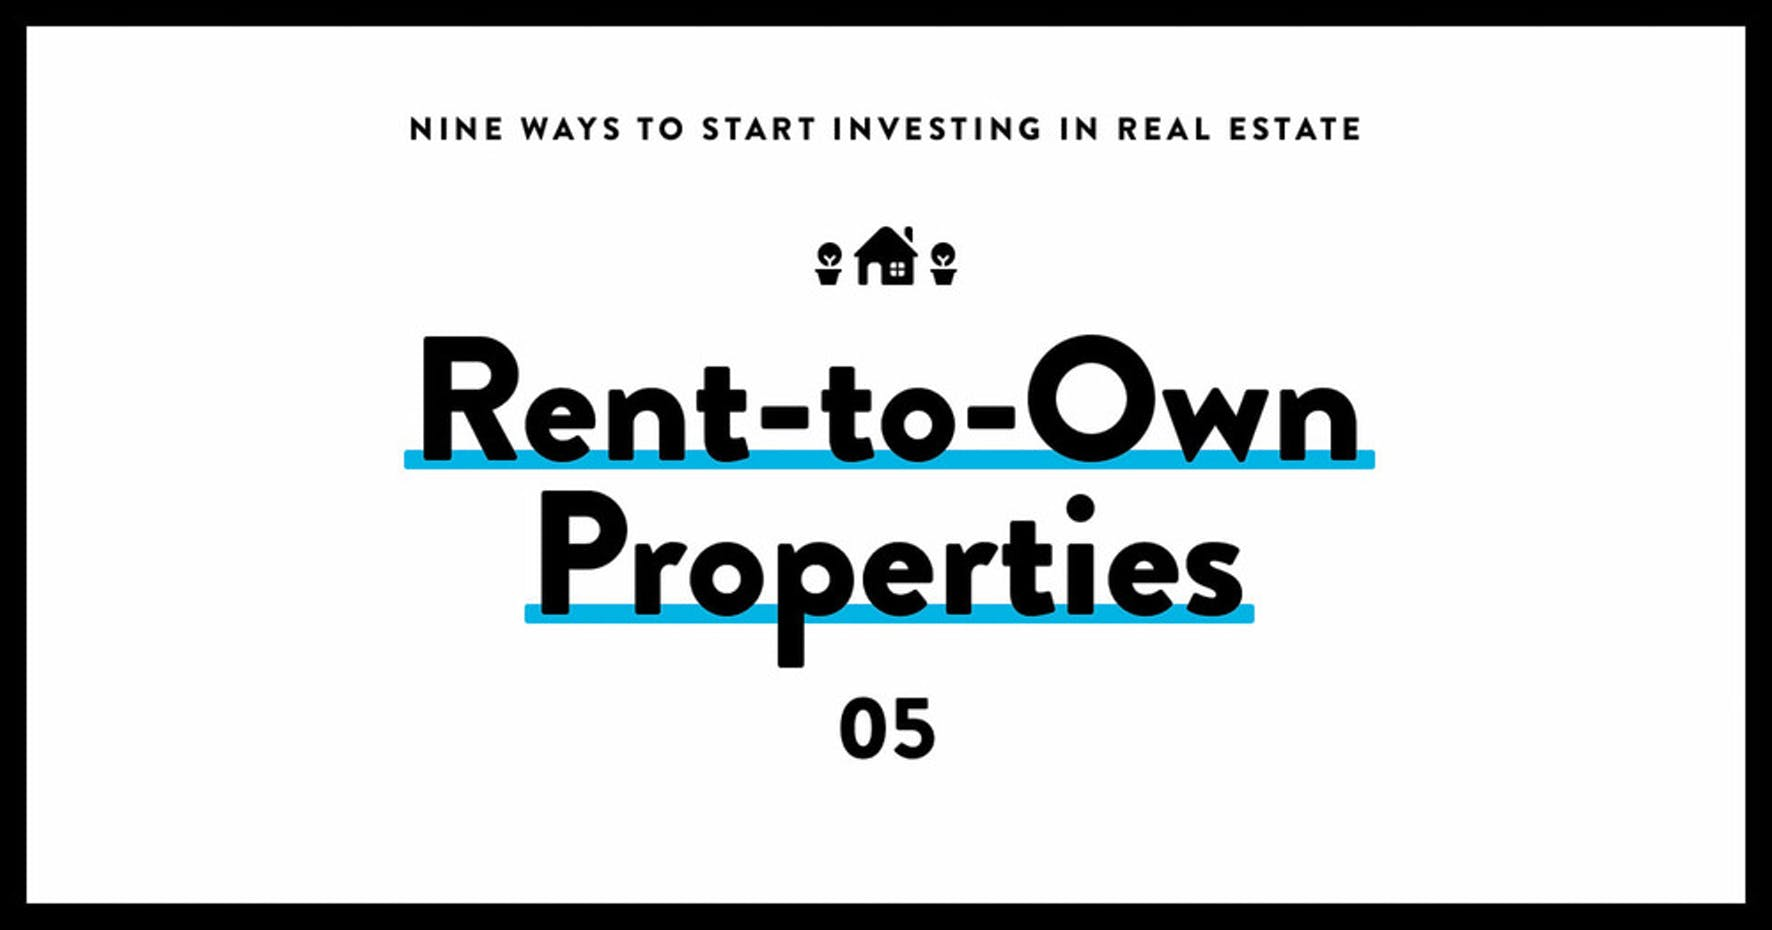 investing in real estate 05 rent-to-own properties